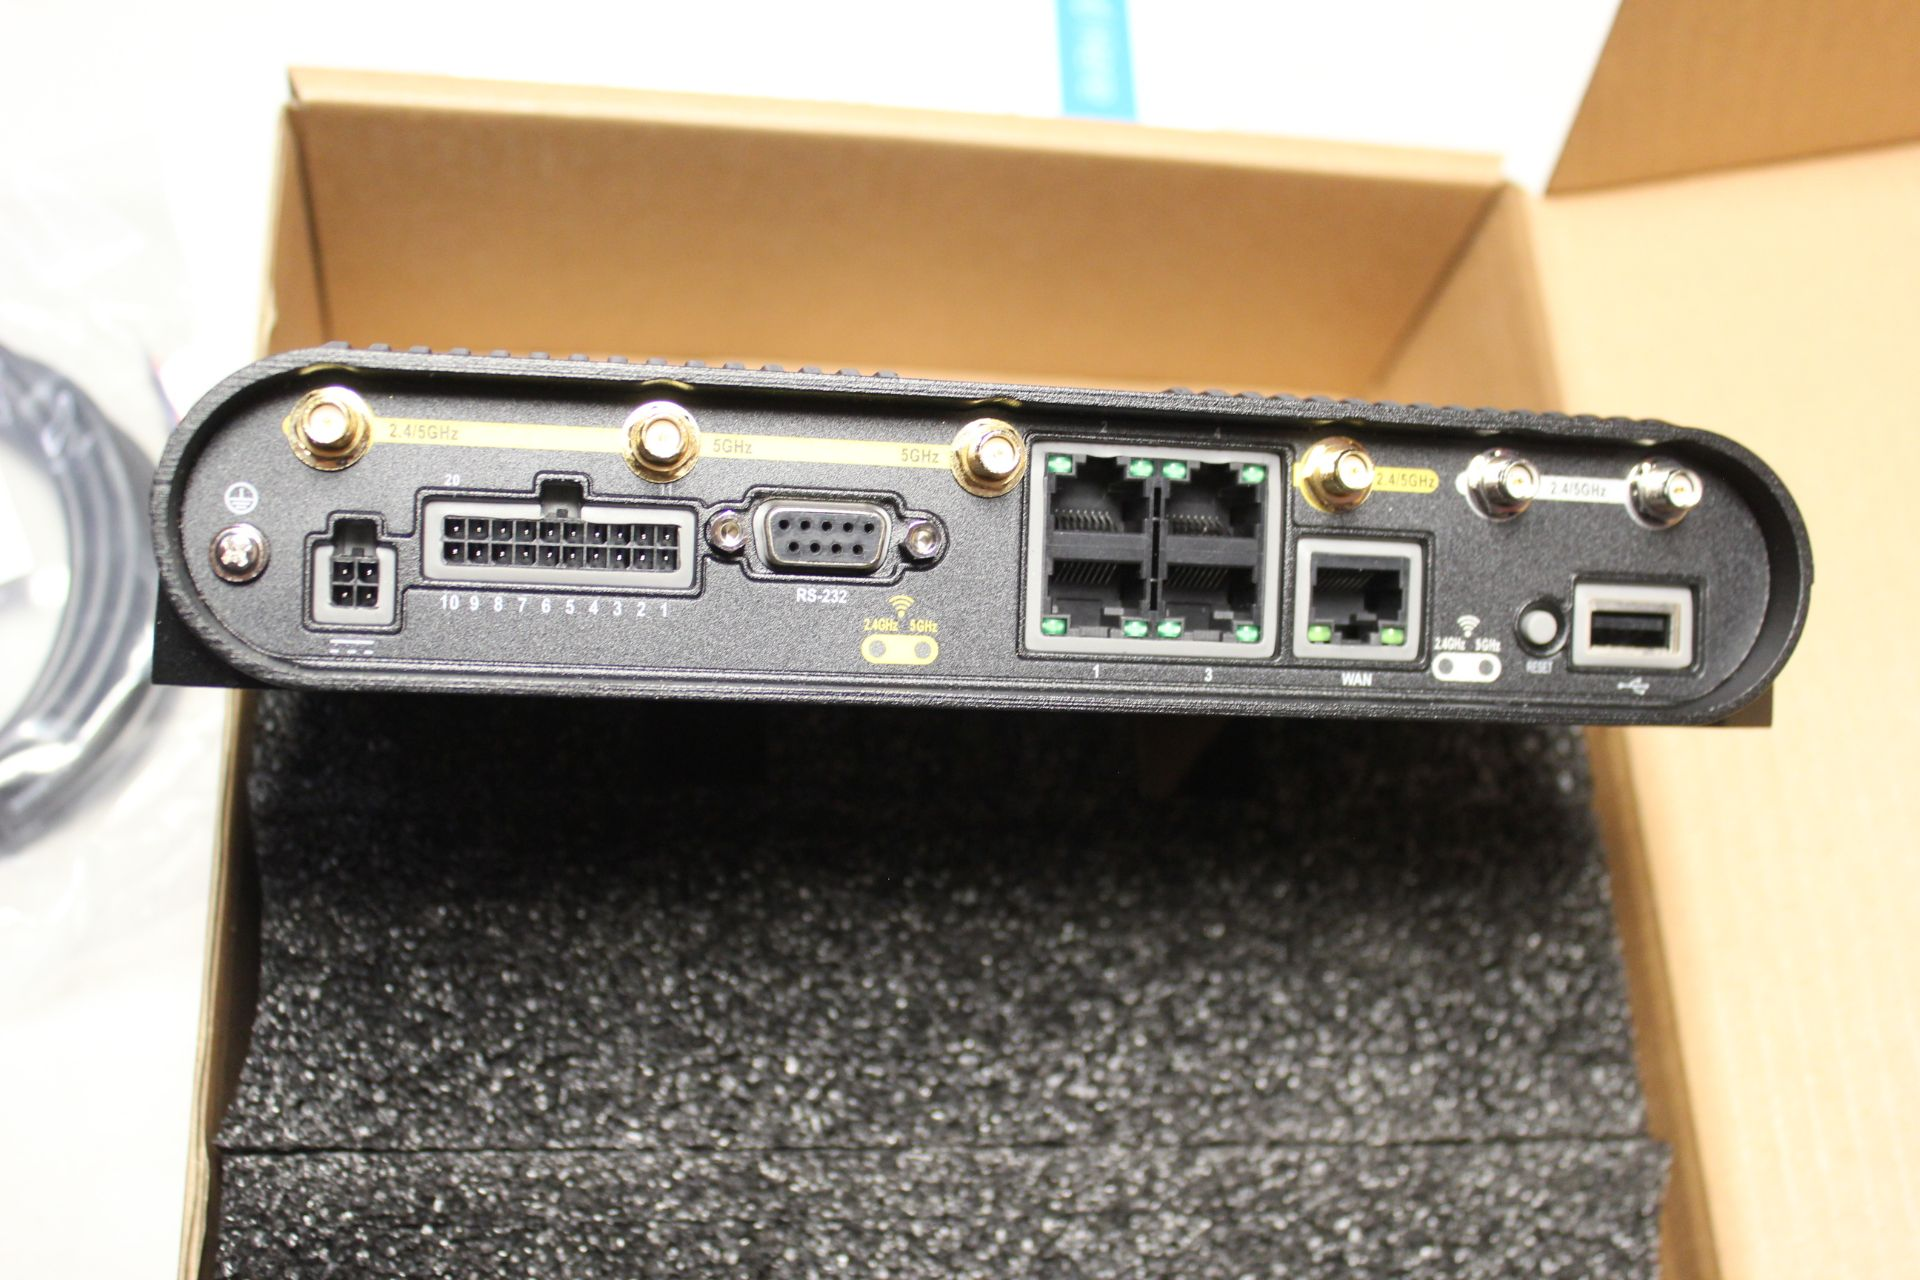 NEW CRADLEPOINT COR SERIES ROUTER - Image 6 of 8